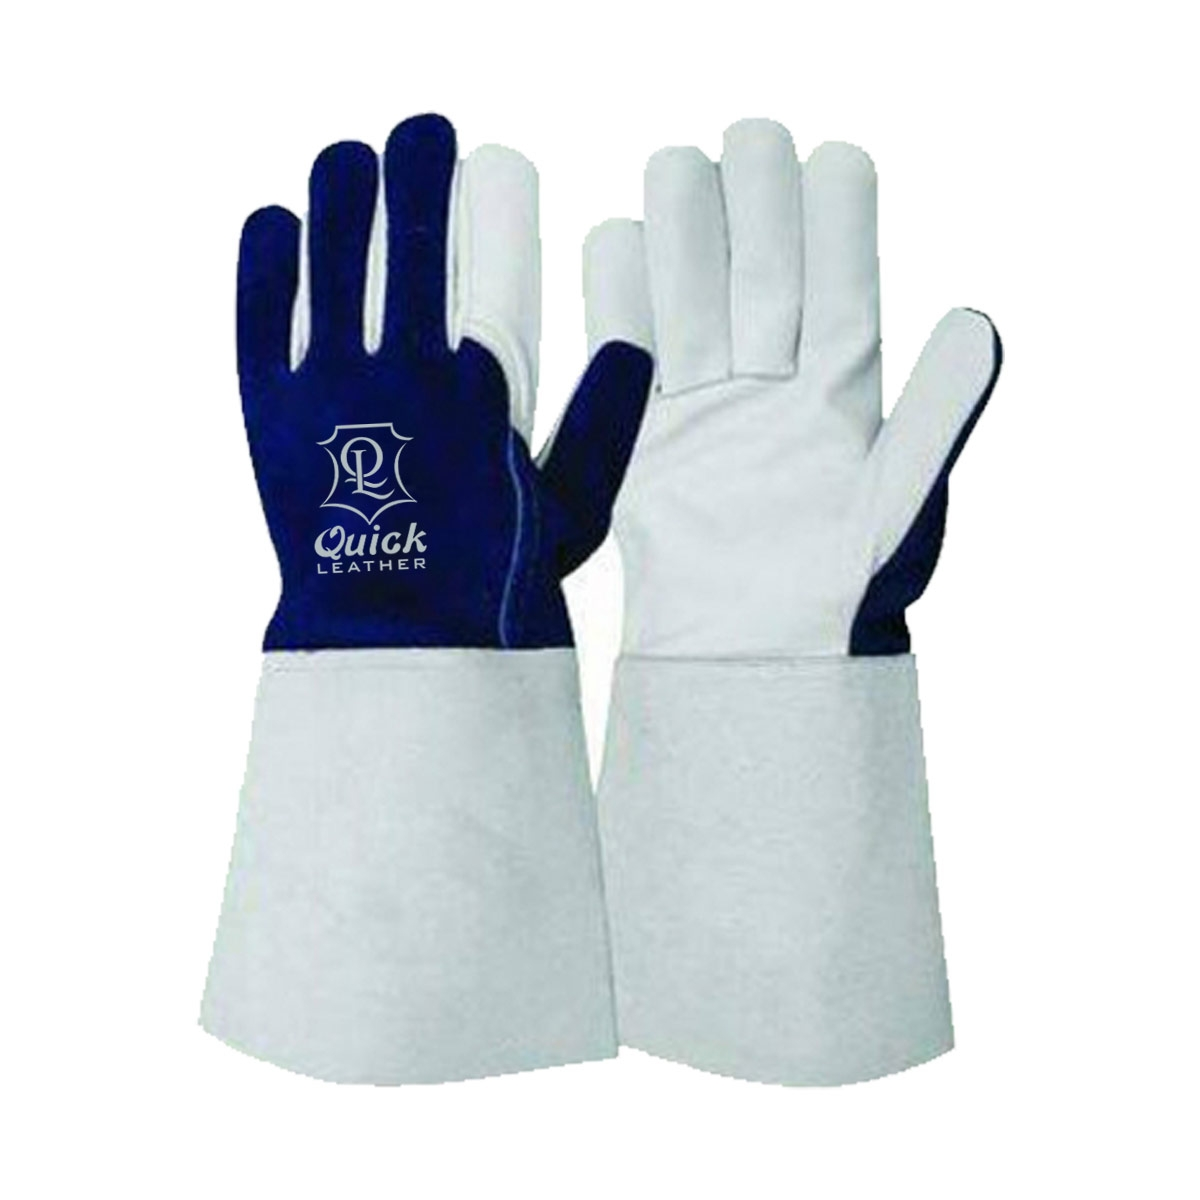 Welding gloves are excellent for use when welding in dry and oily conditions QL 211